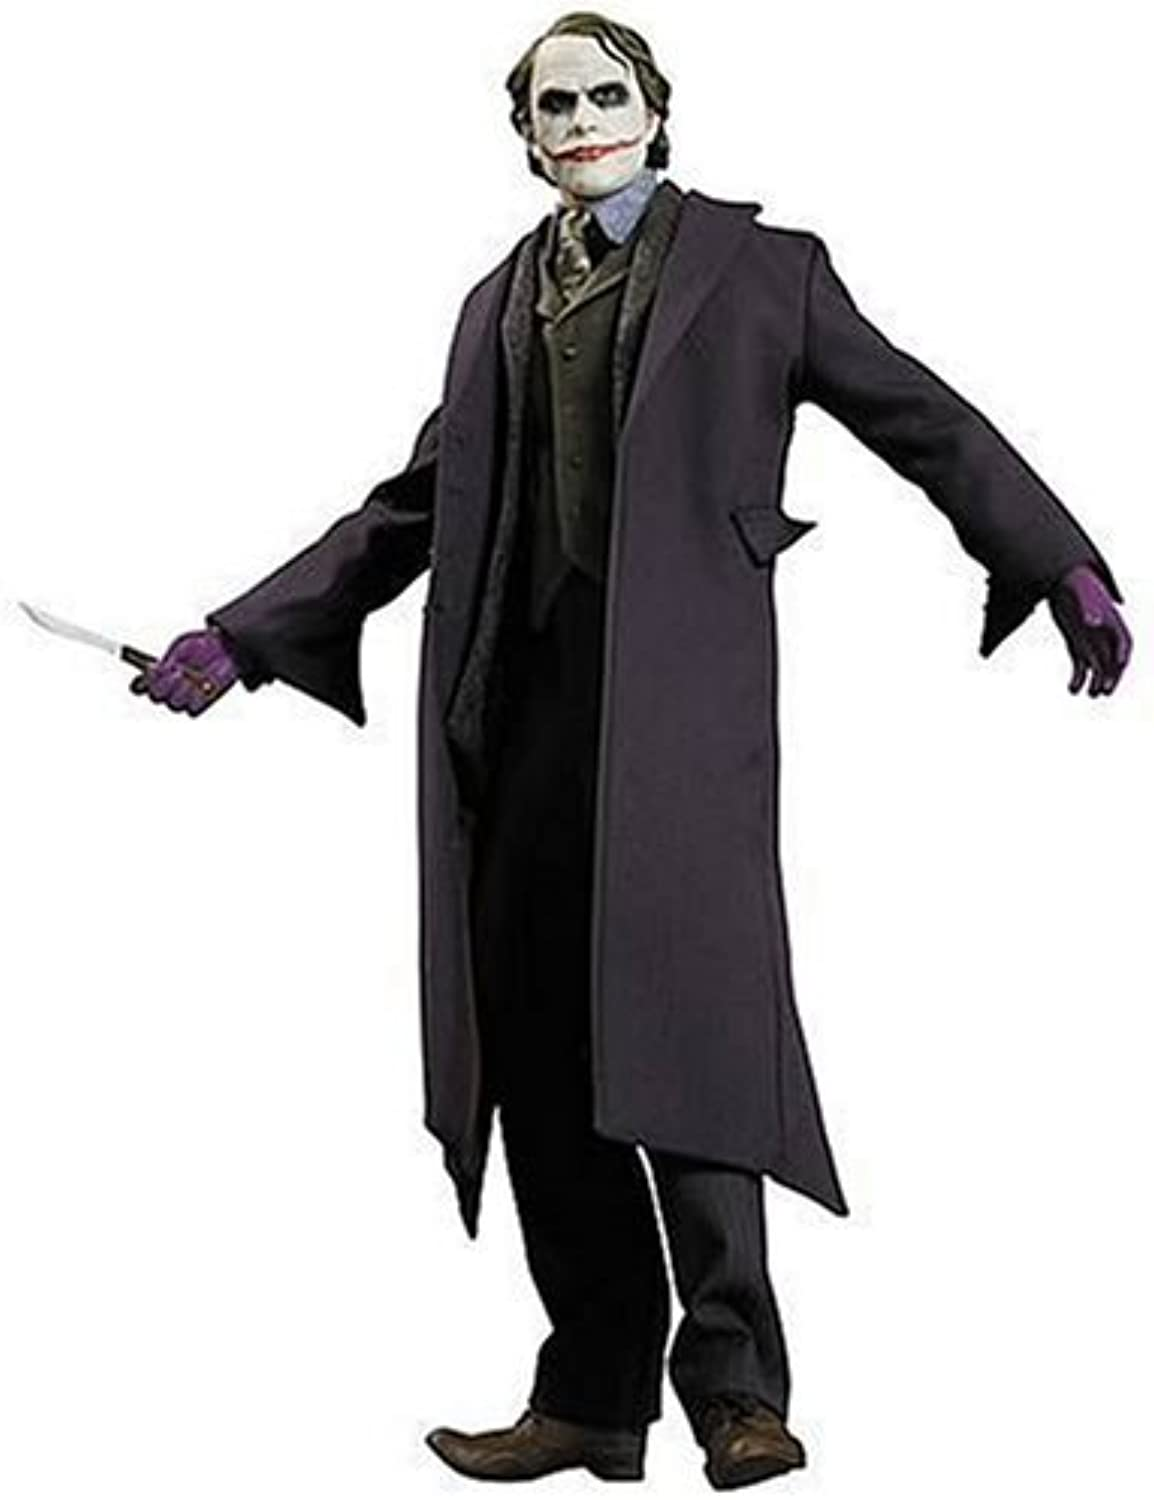 DC Comics THE Dark Knight Movie 1 6 Scale JOKER HEATH LEDGER Collector Action Figure Puppe by DC Direct 13 inch 1 6 - EXTREMELY RARE